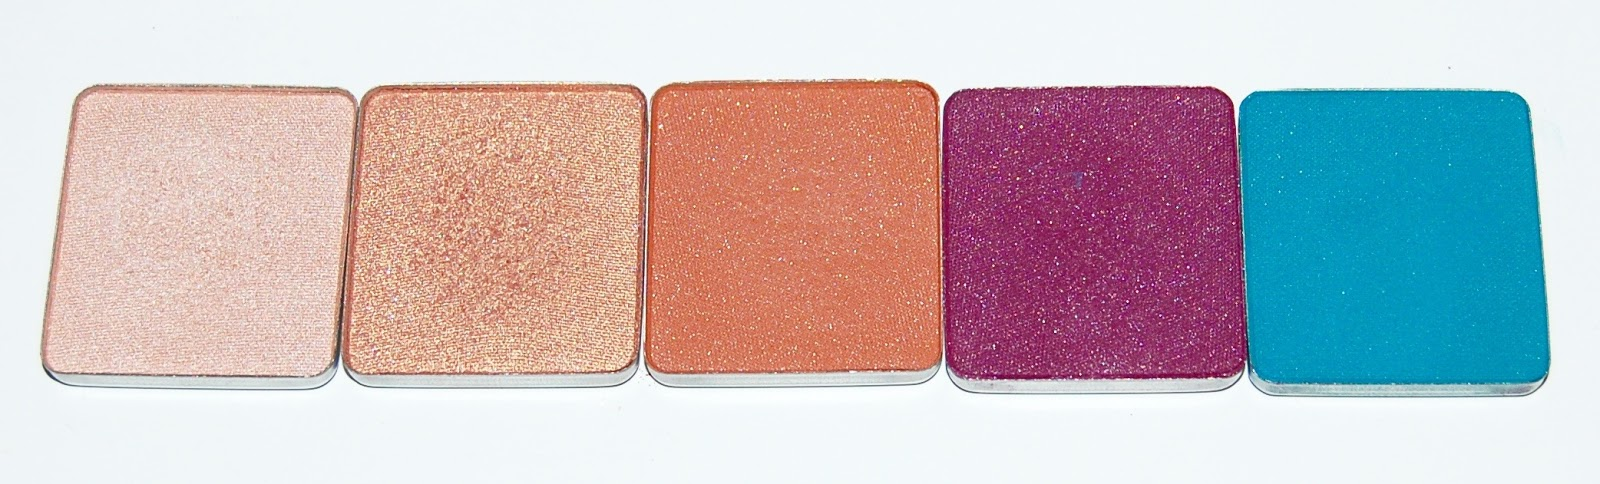 Inglot Eye Shadows